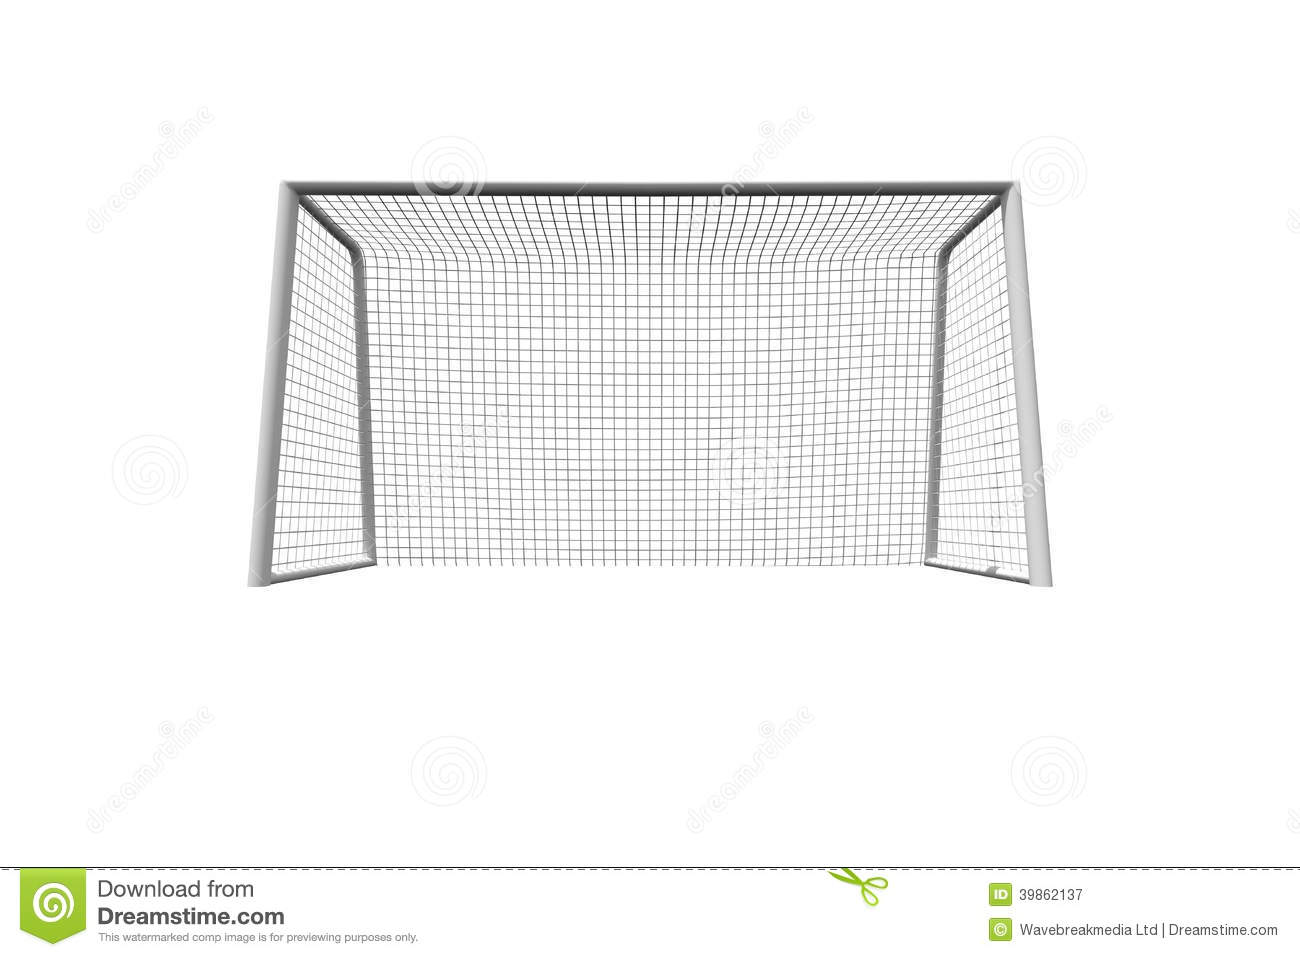 Soccer goal post clipart clipground for Football goal post coloring page